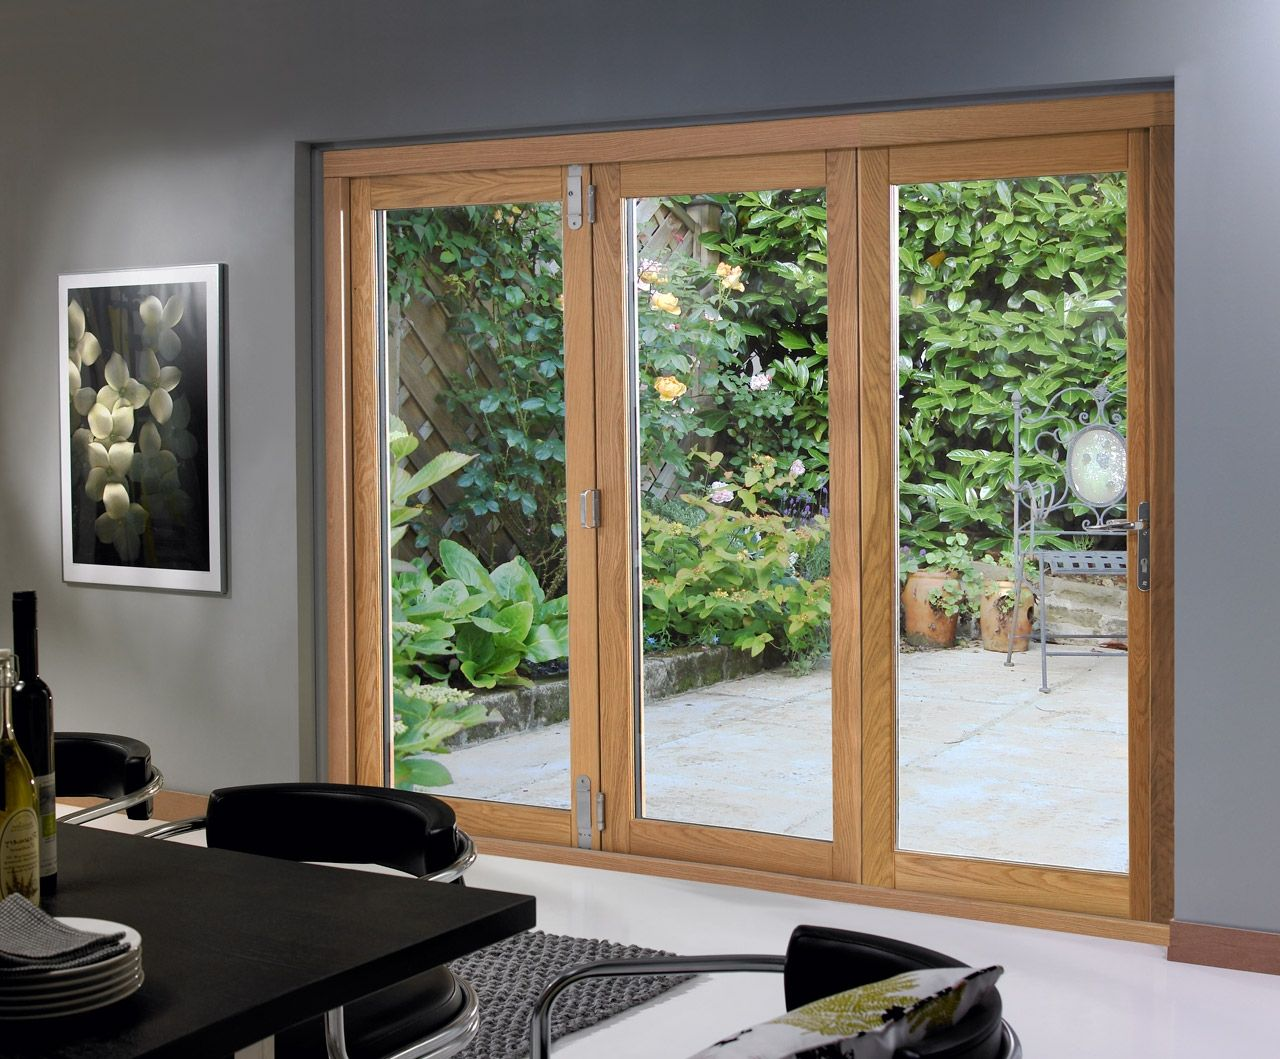 3 panel french patio doors. 3 Panel Sliding Glass Door - In Case You Are Considering Remodeling Or Looking At The Interior Layouts Of A Brand New Home, Y French Patio Doors